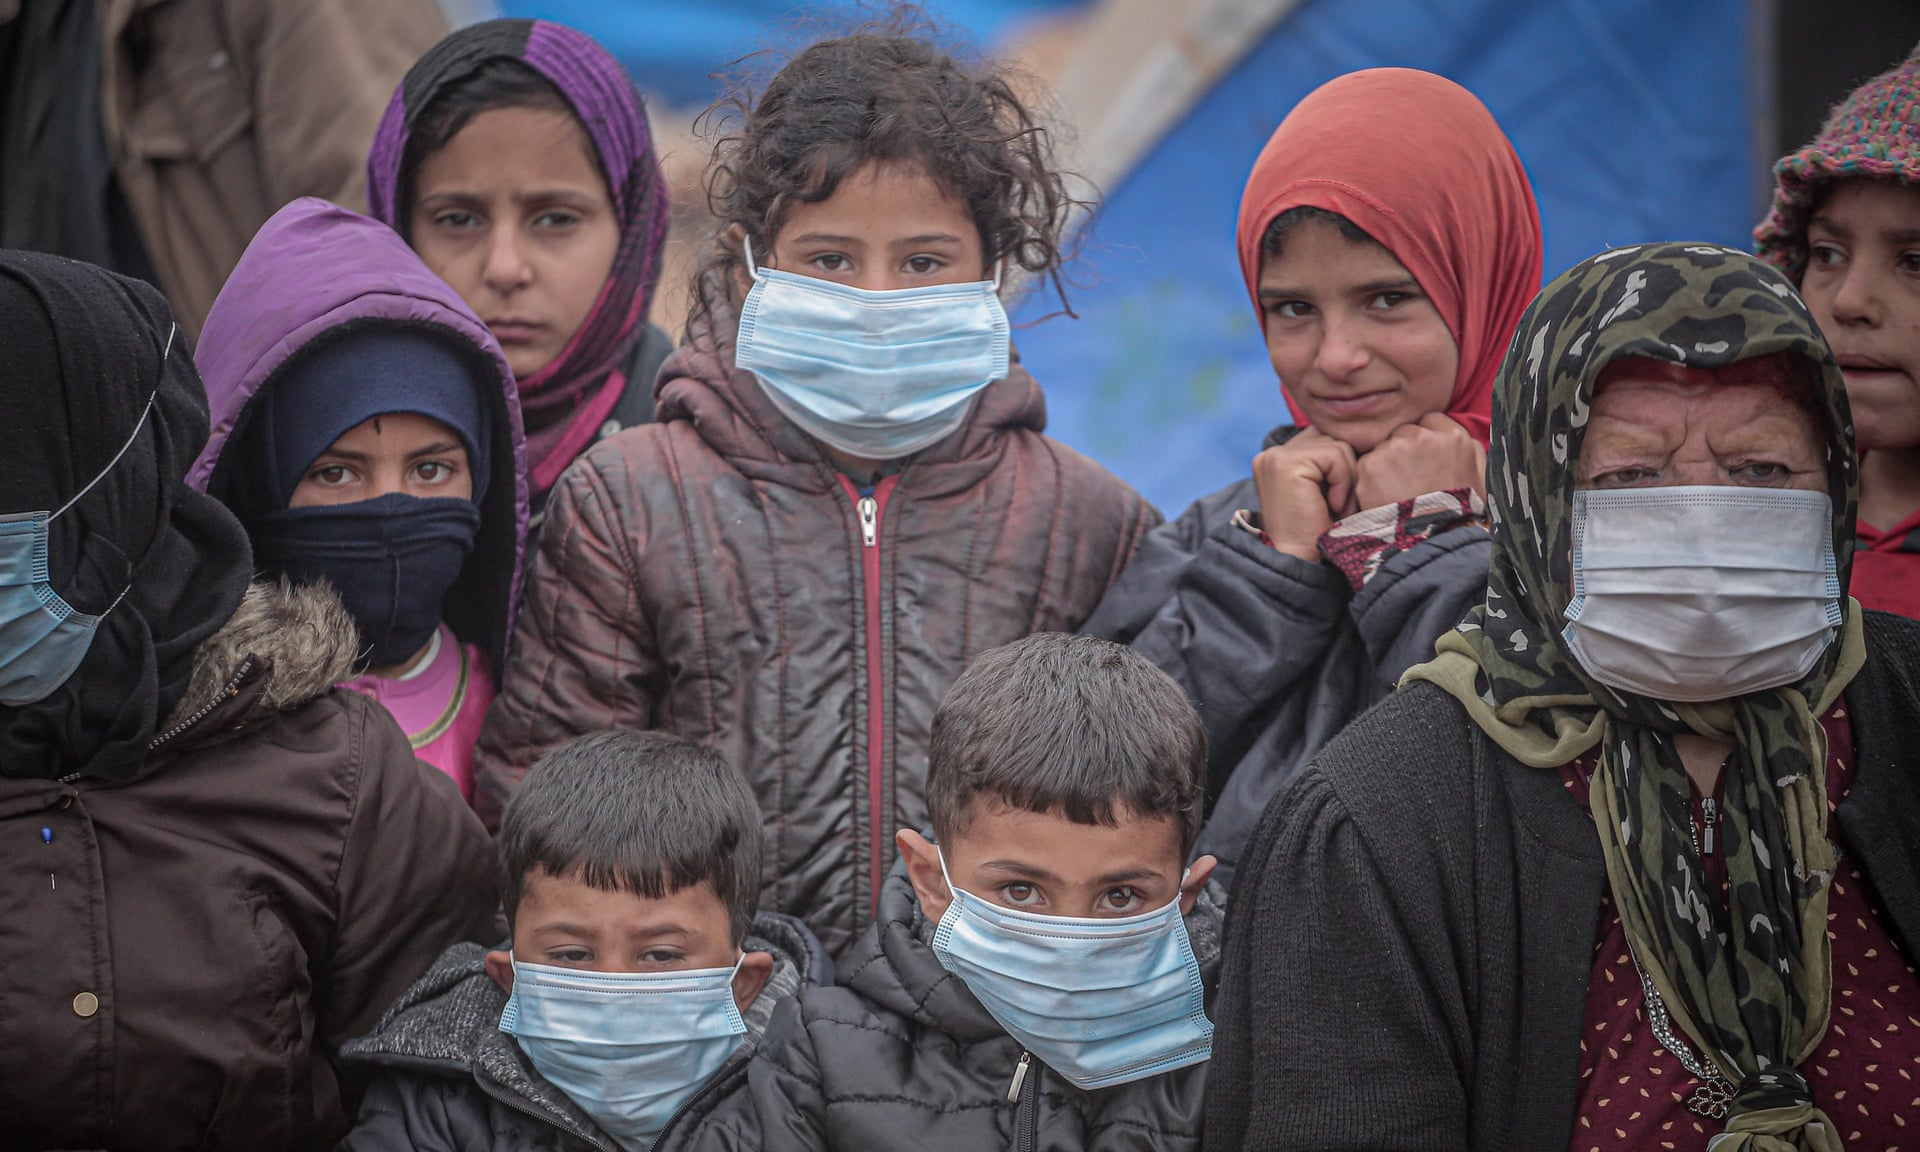 Children and an elderly woman wear masks as a preventive measure against the coronavirus in Idlib. (Muhammed Said, N/A) Anadolu Agency via Getty Images